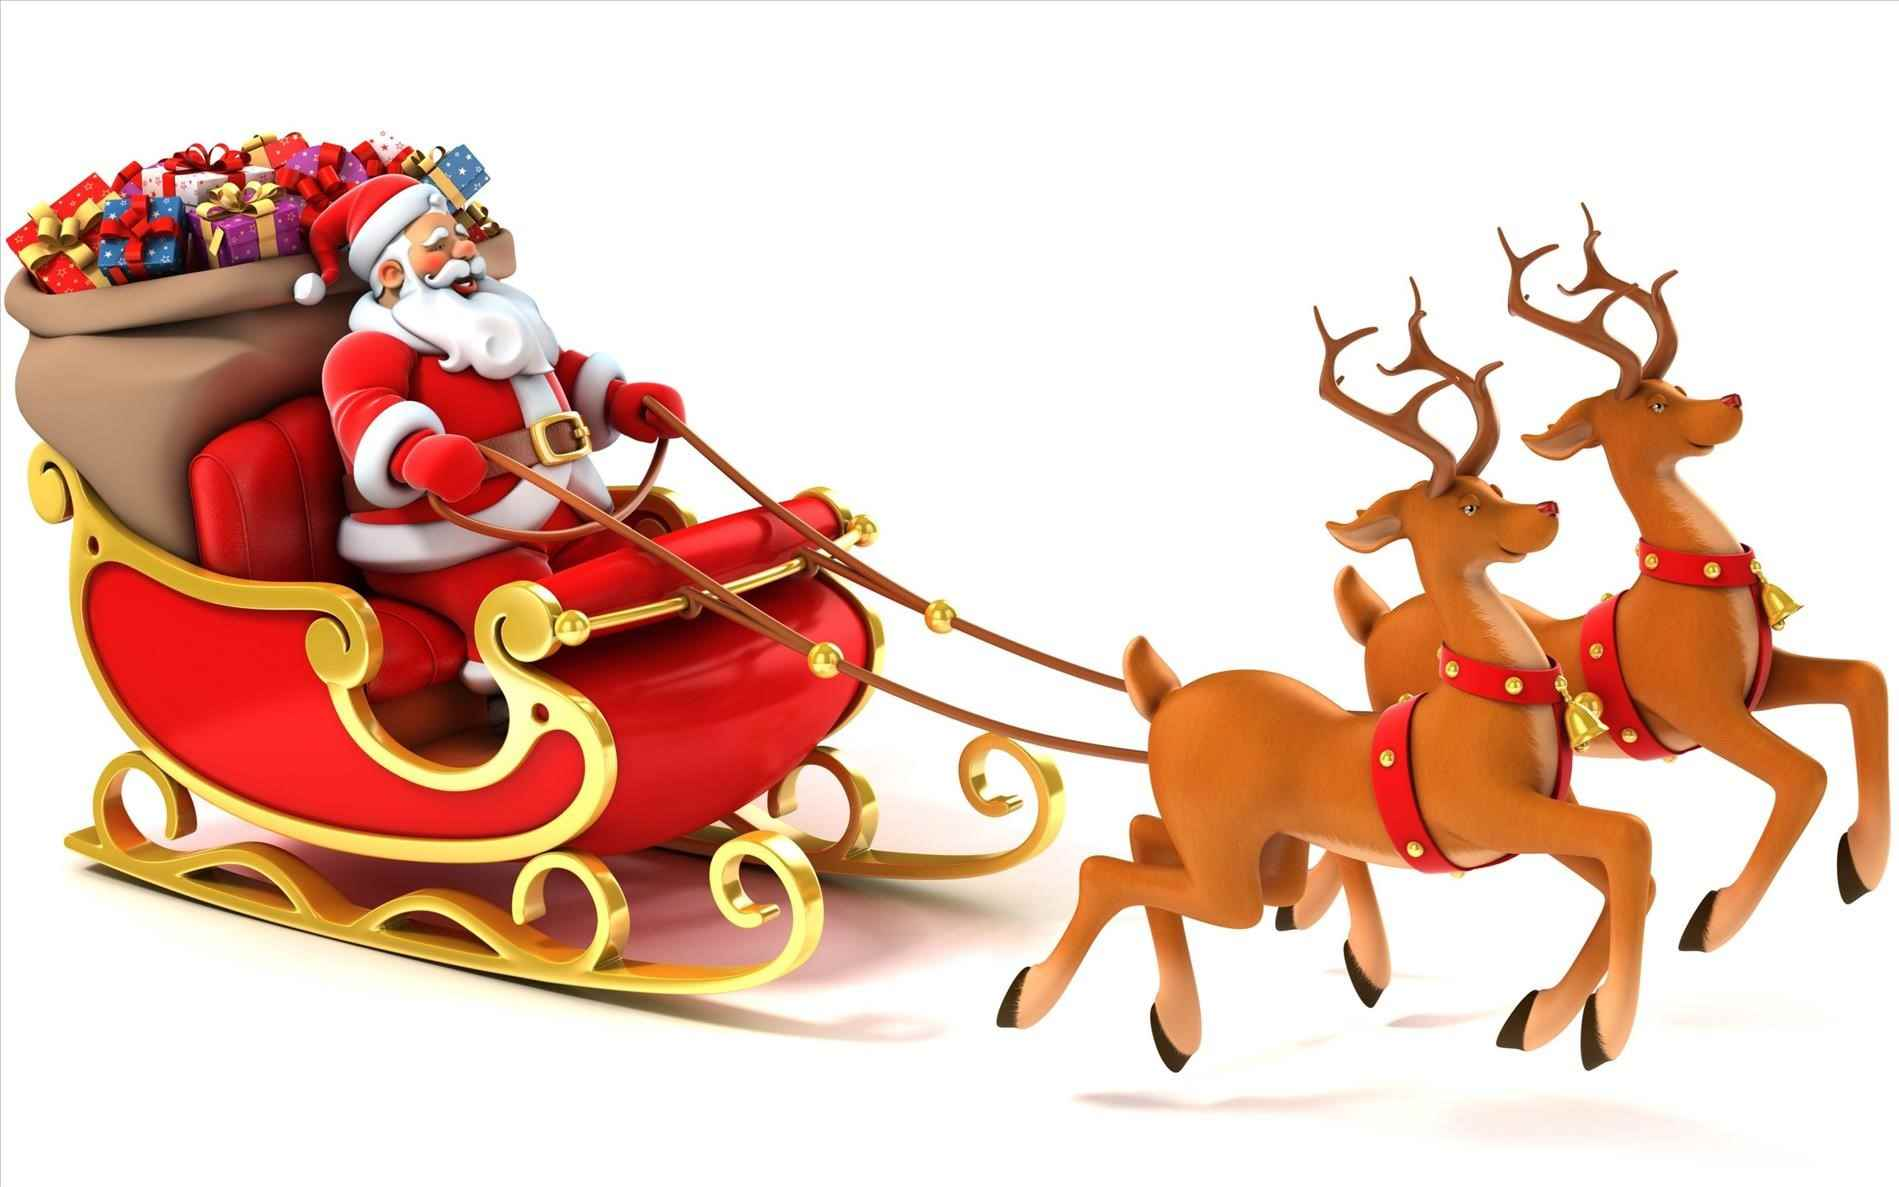 . PlusPng.com Hd Png Wallpaper And Background X Id Claus Transparent Free Download  Martcom Claus Christmas Santa Images PlusPng.com  - Christmas HD PNG